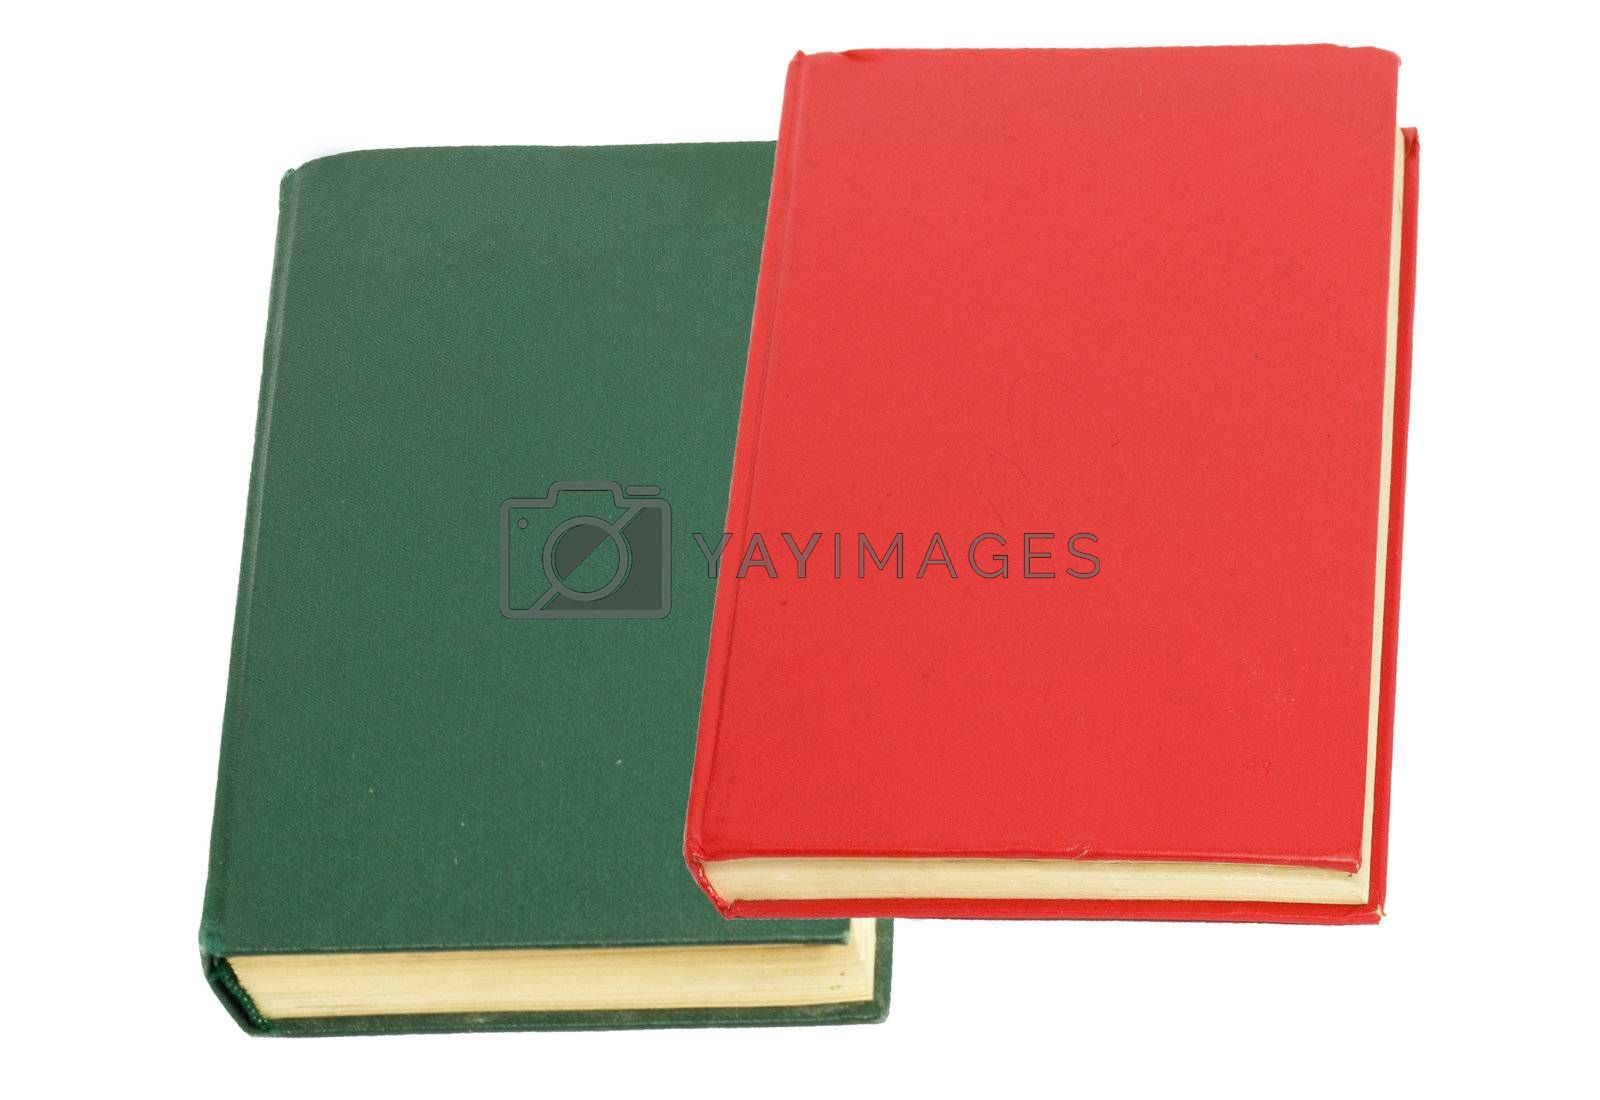 green book and red book on white background